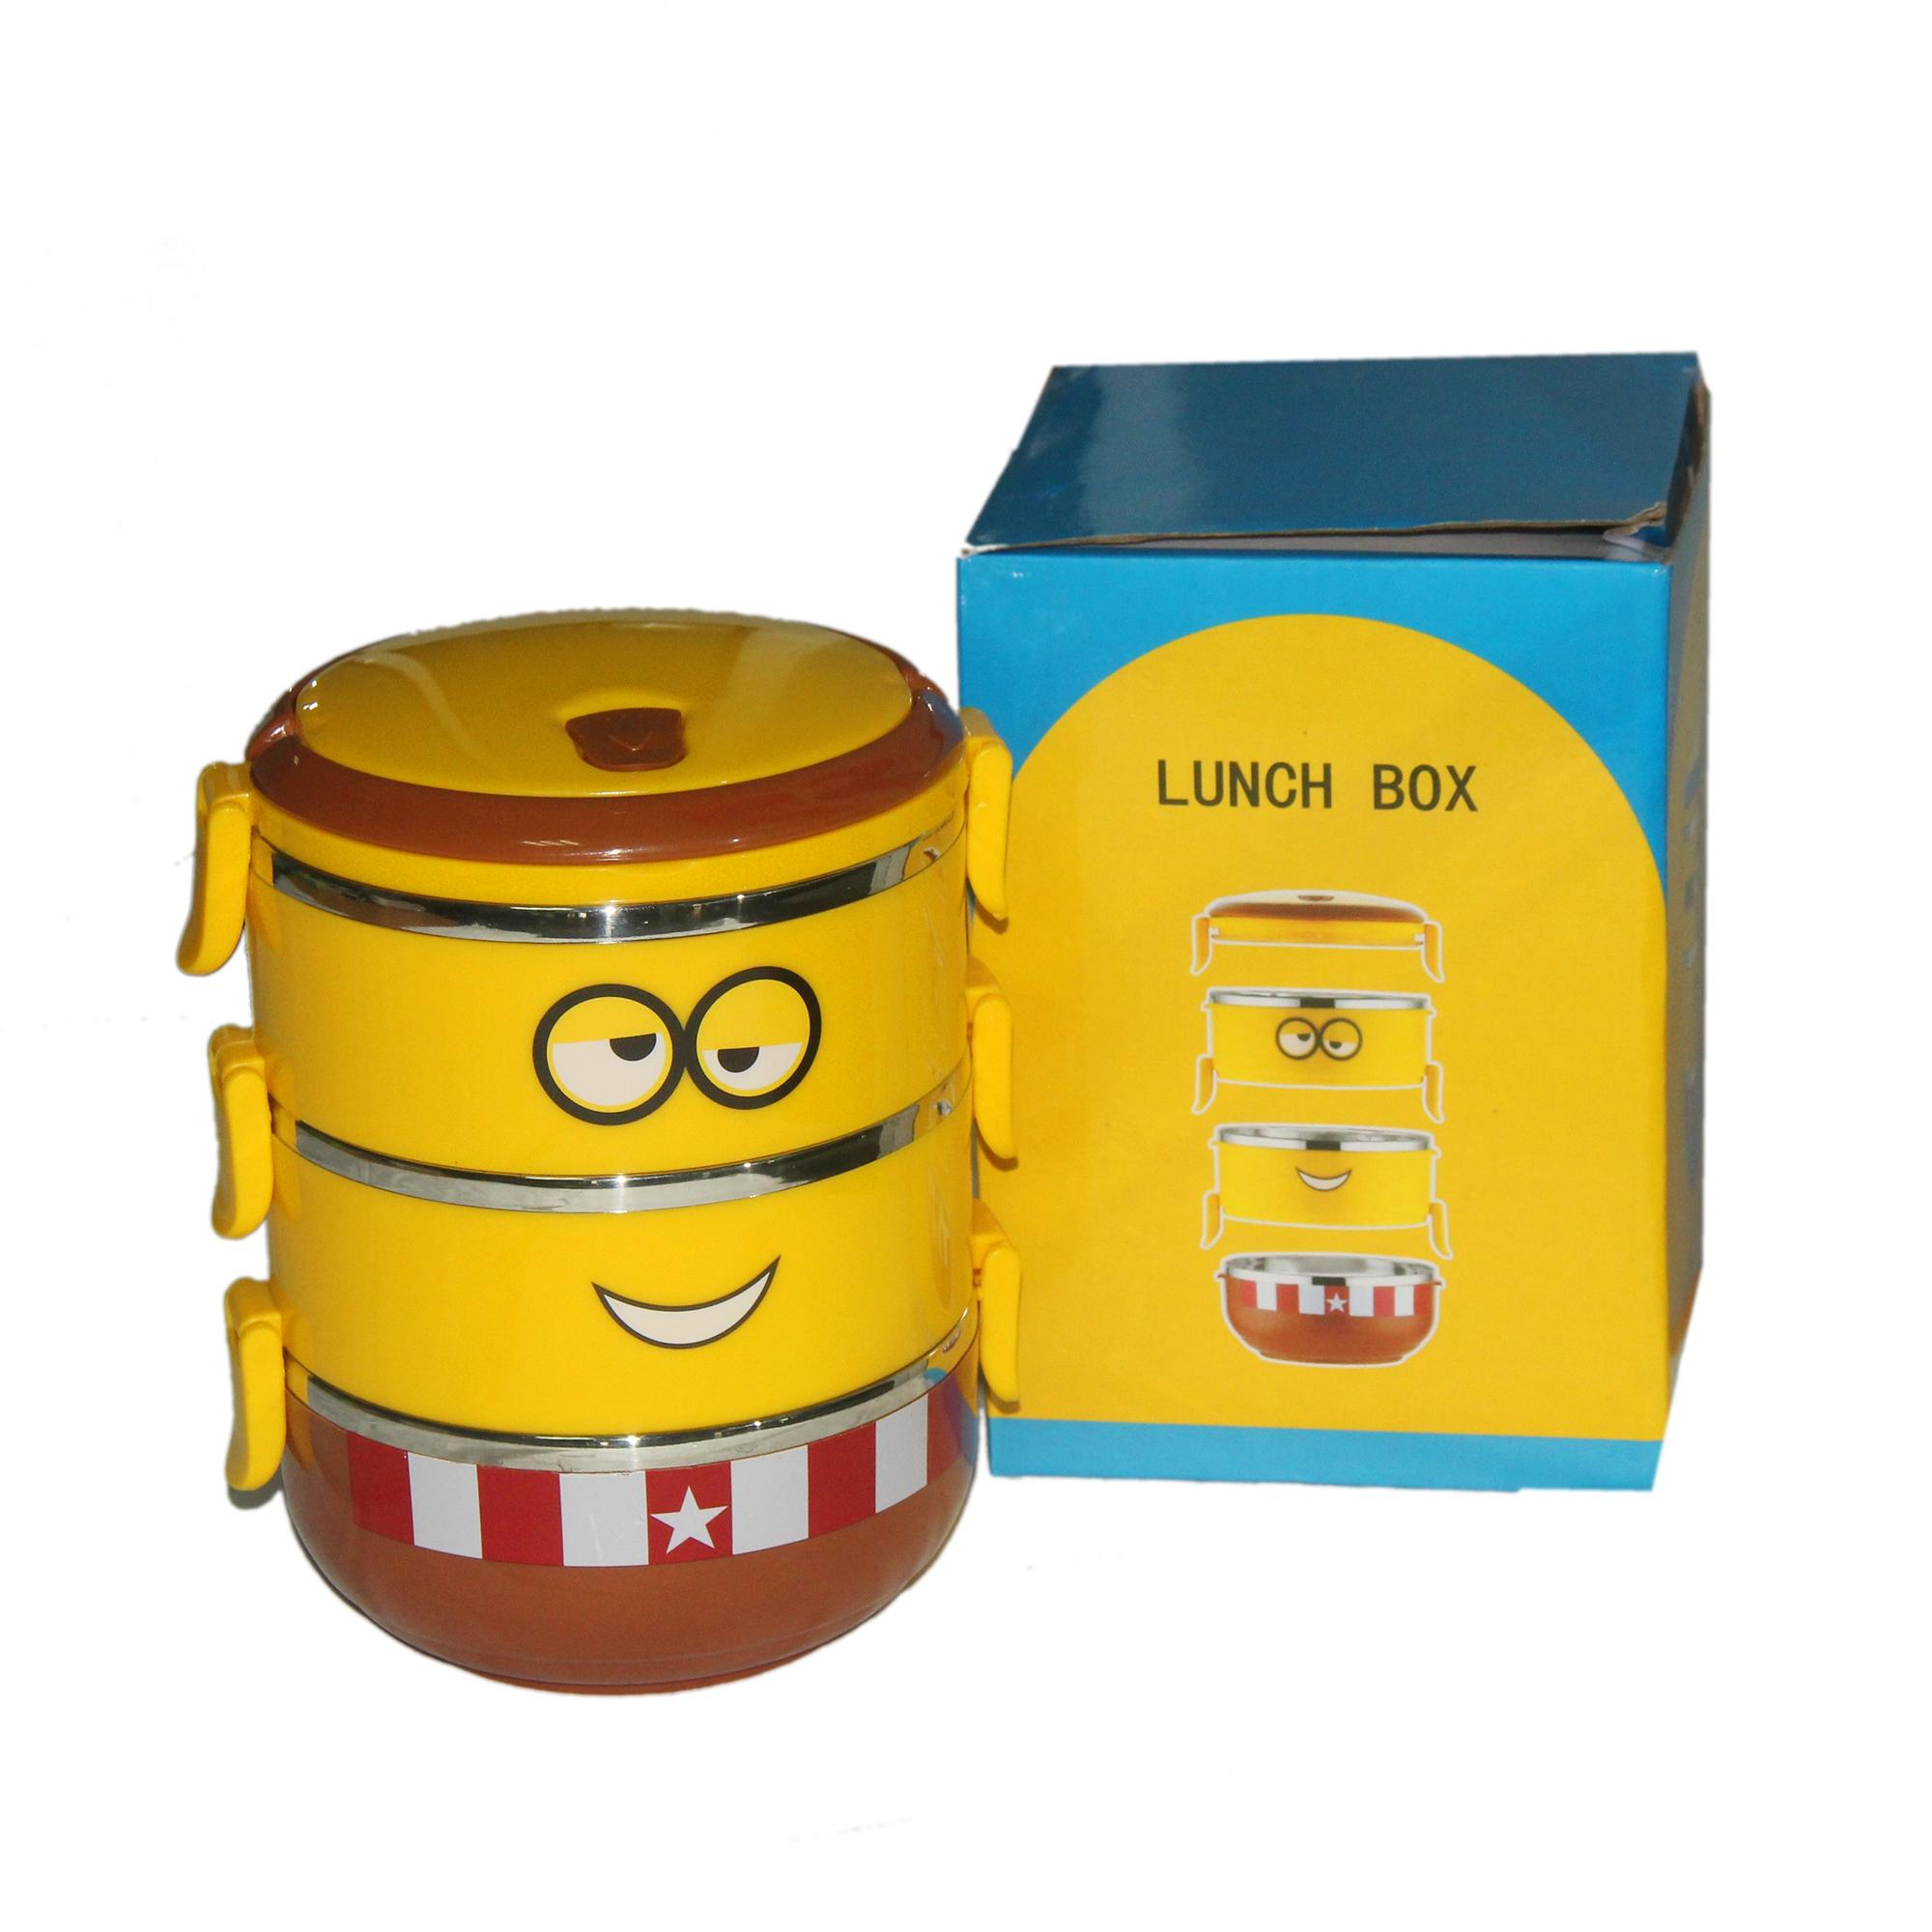 Minion Stainless Steel Lunch Box 2.1L - Brown